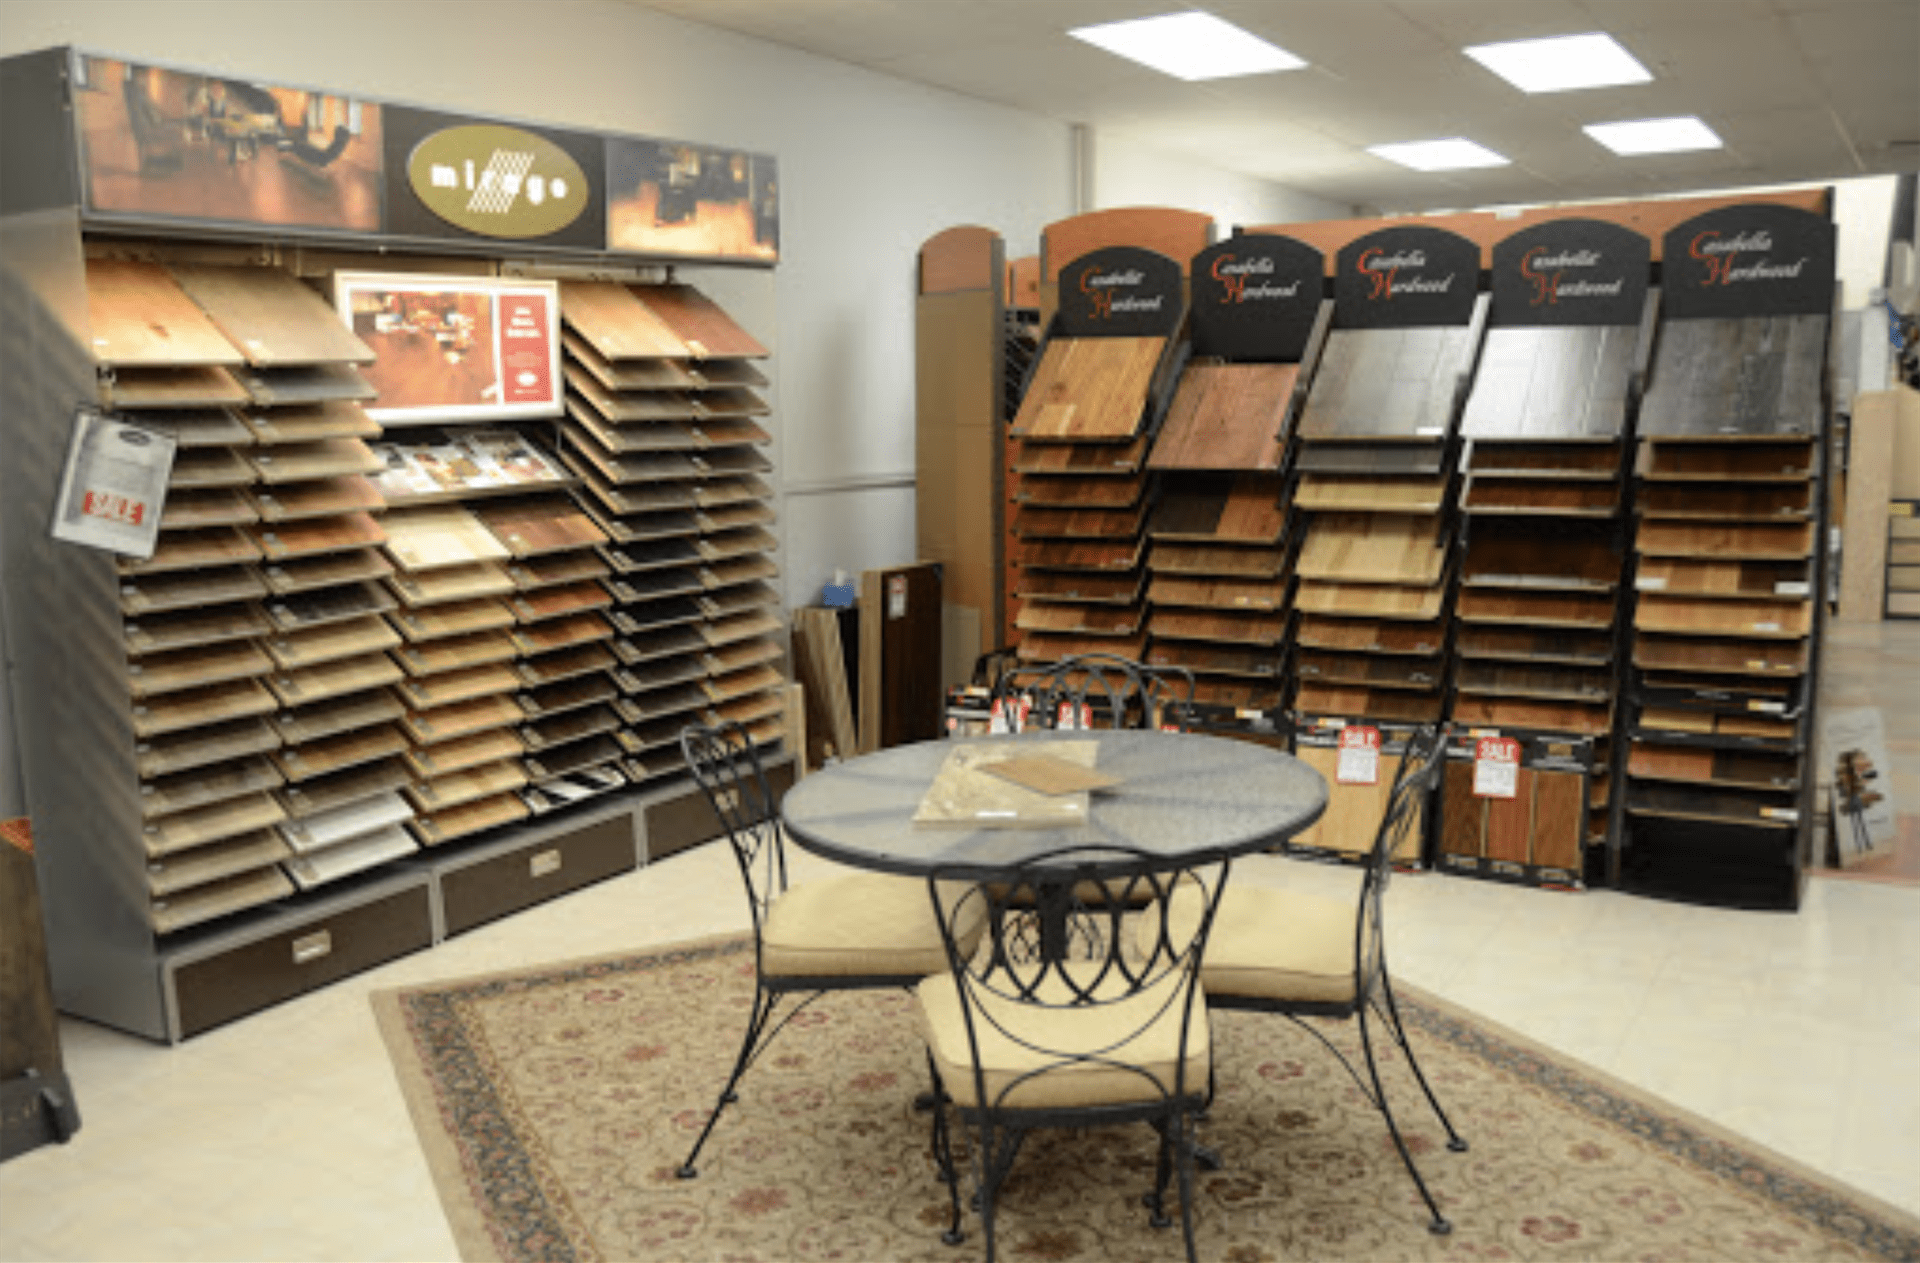 Floorcrafters - Moline showroom in Moline, IL